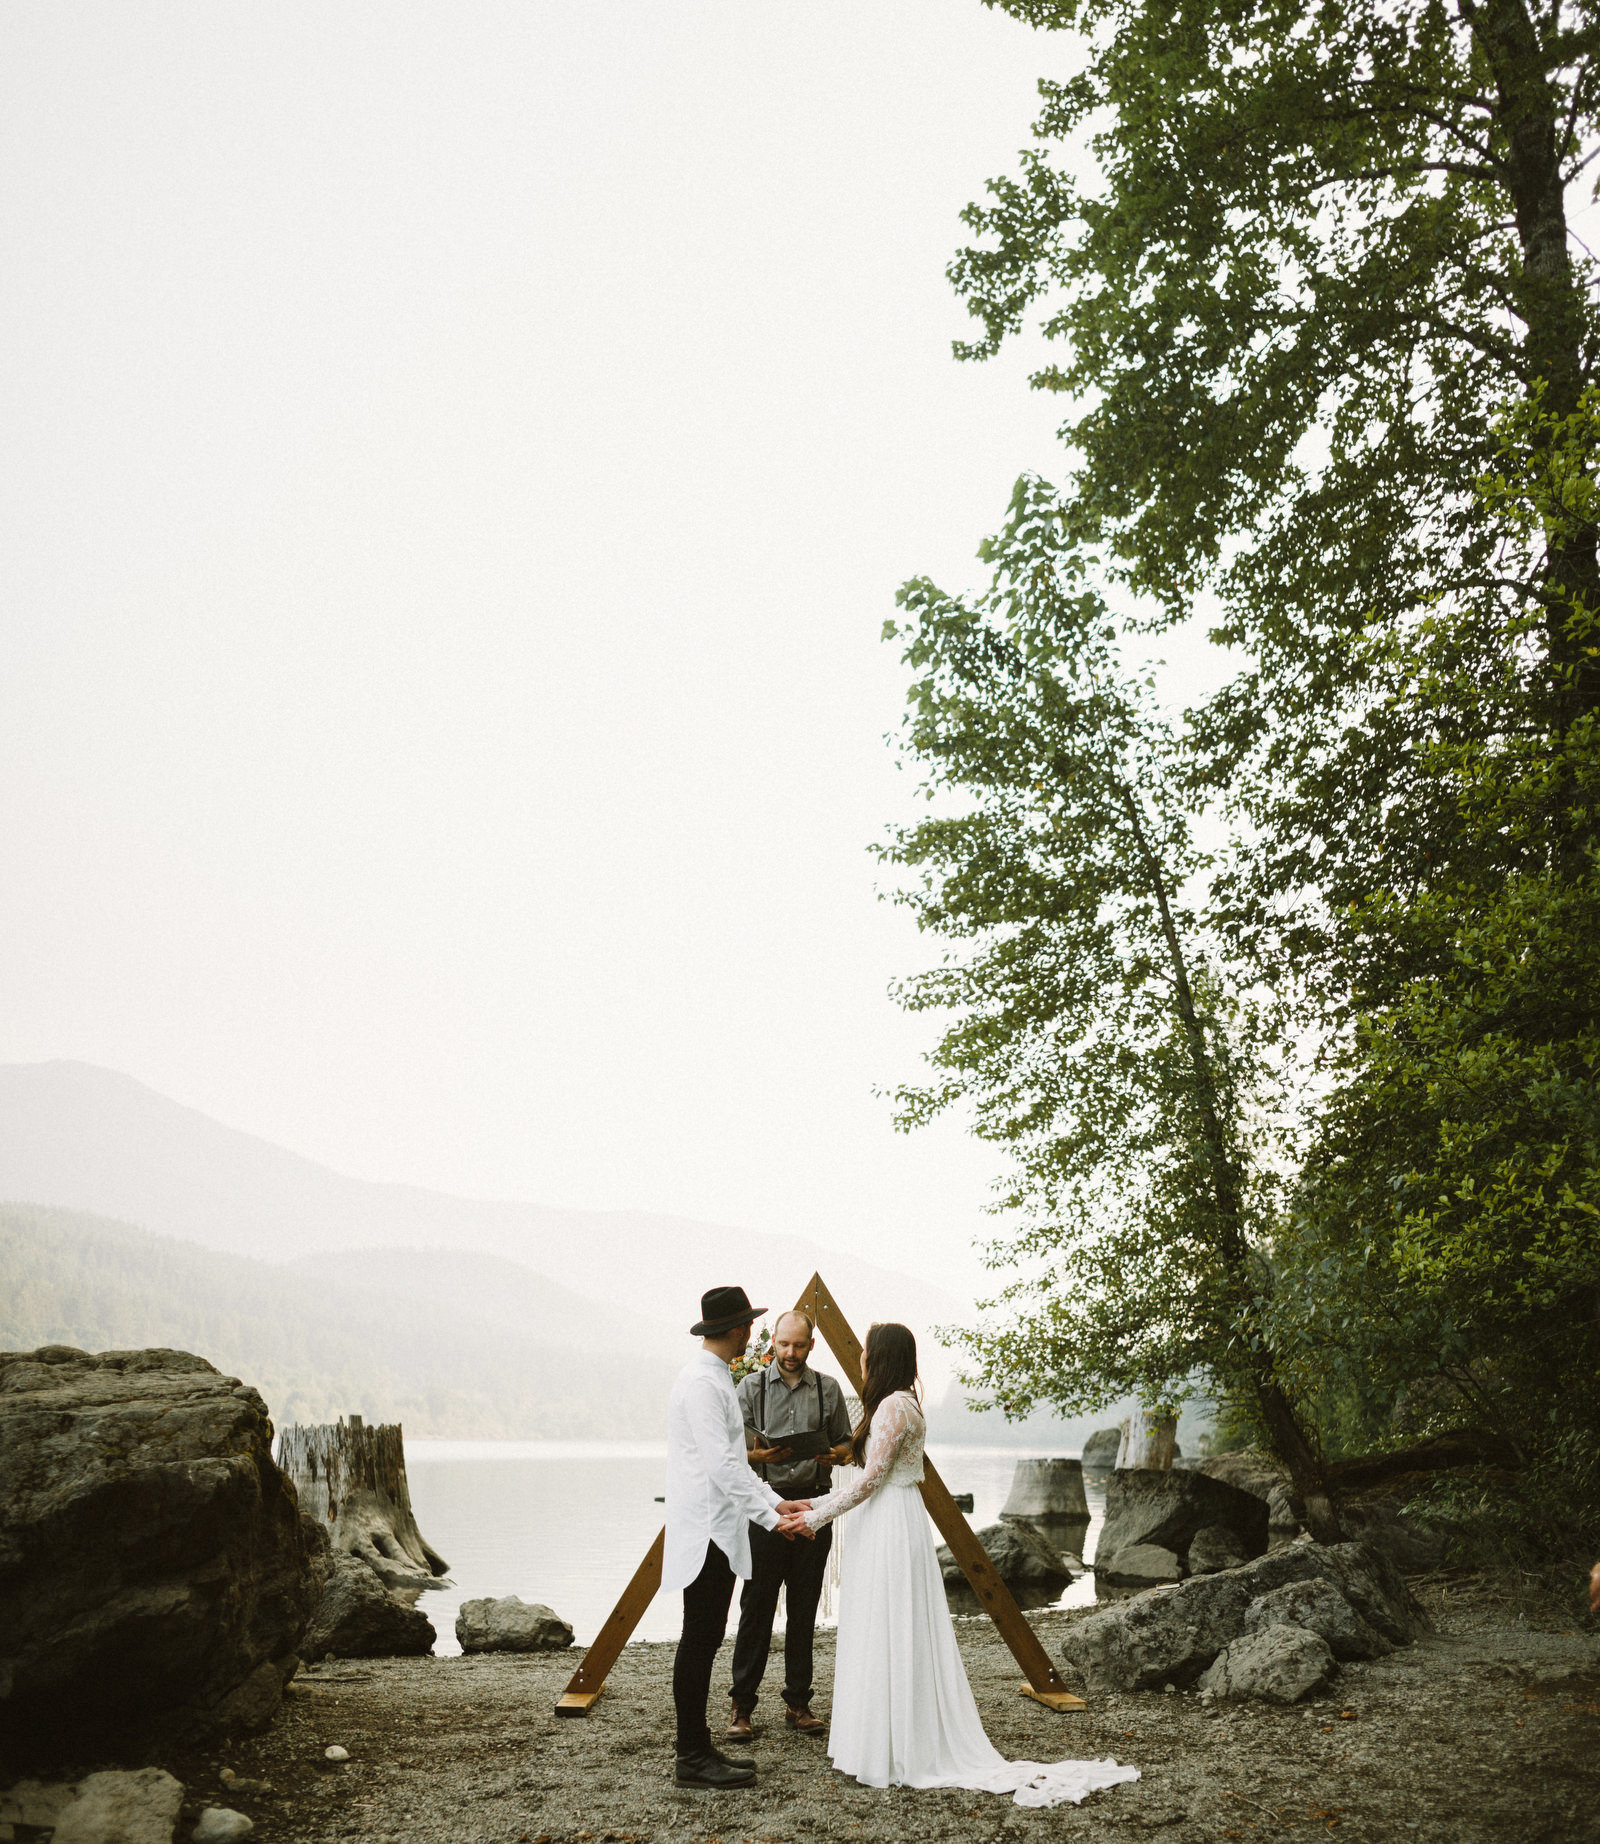 athena-and-camron-seattle-elopement-wedding-benj-haisch-rattlesnake-lake-christian-couple-goals41